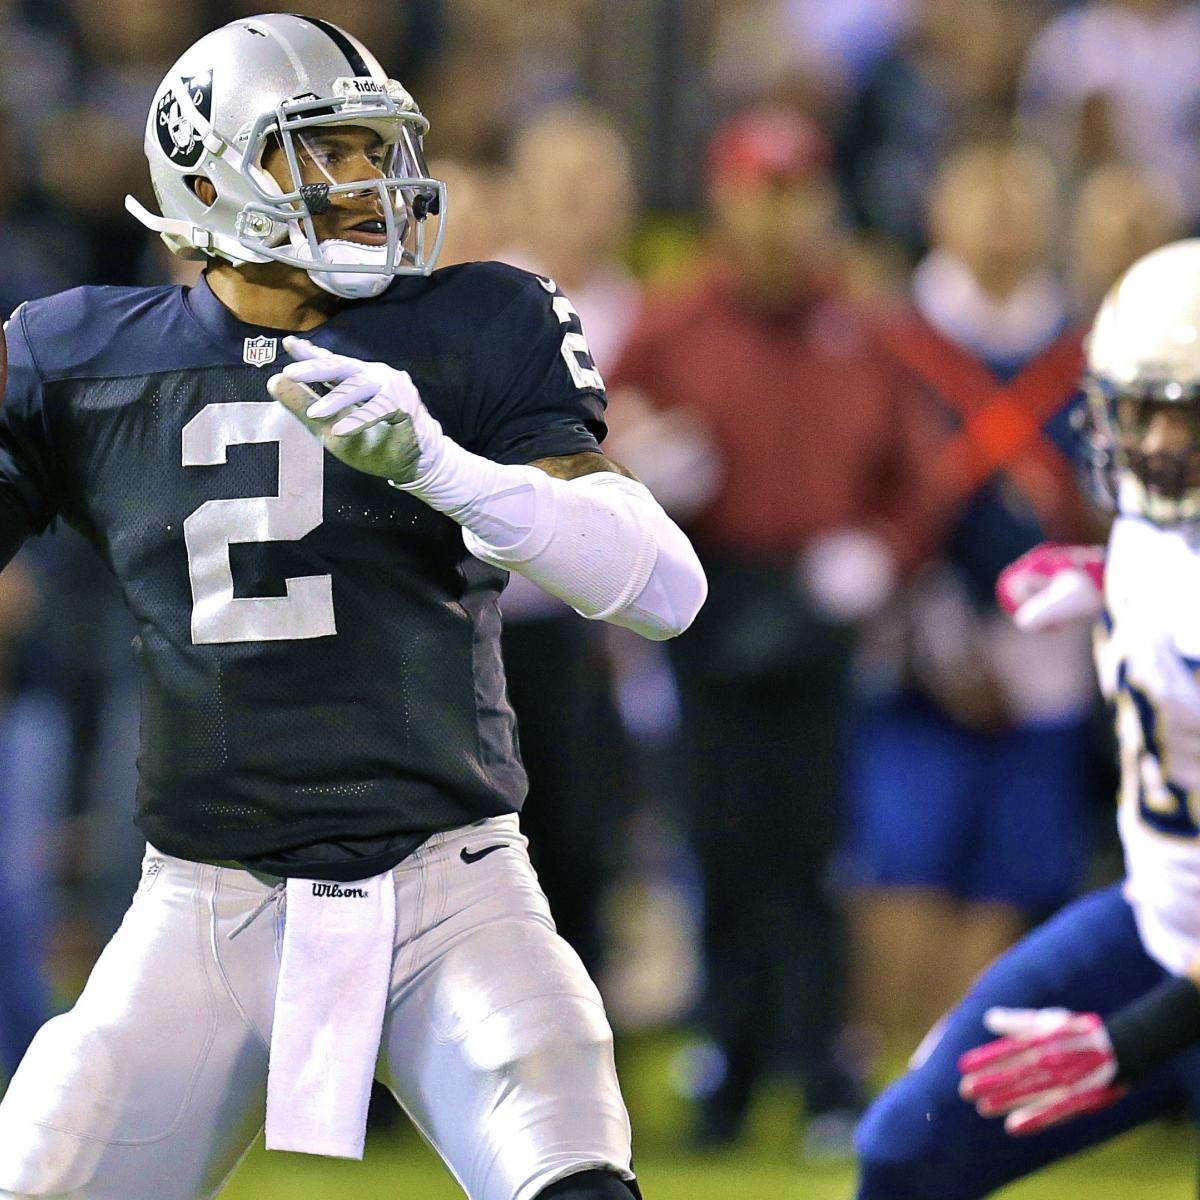 San Diego Chargers Final Score: San Diego Chargers Vs Oakland Raiders: Live Score